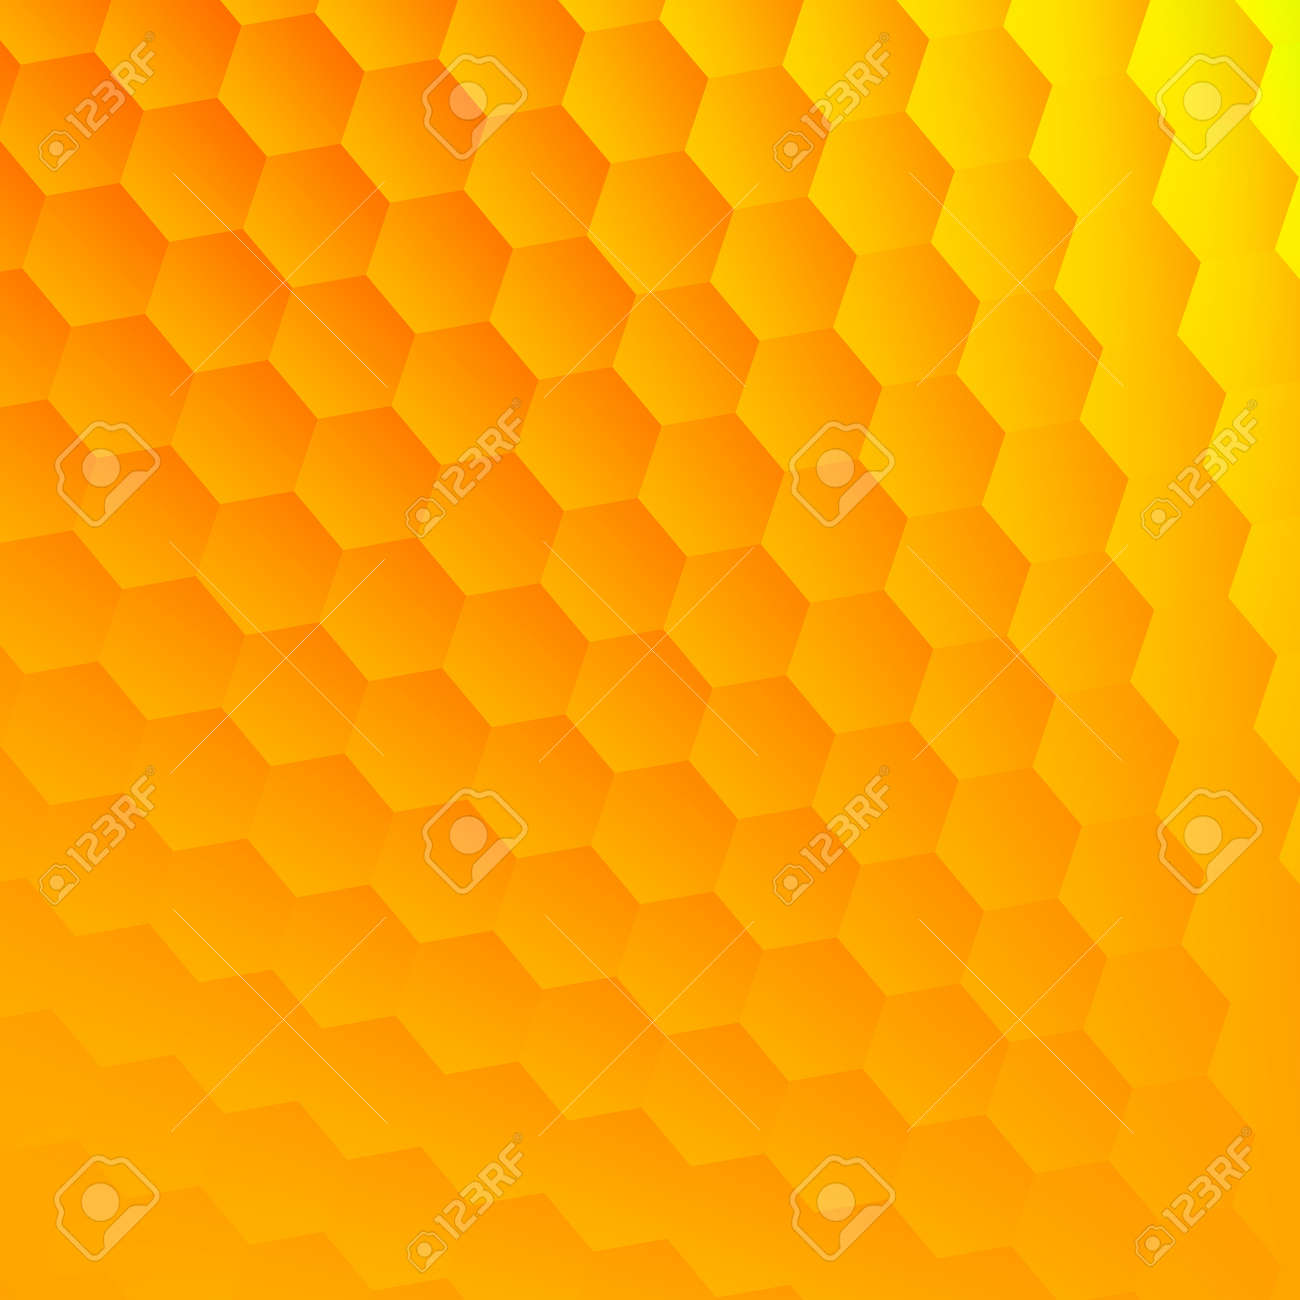 Abstract Yellow Hexagons Background. Cool Hexagon Grid. Hex Shape Geometry.  Flat Design Element